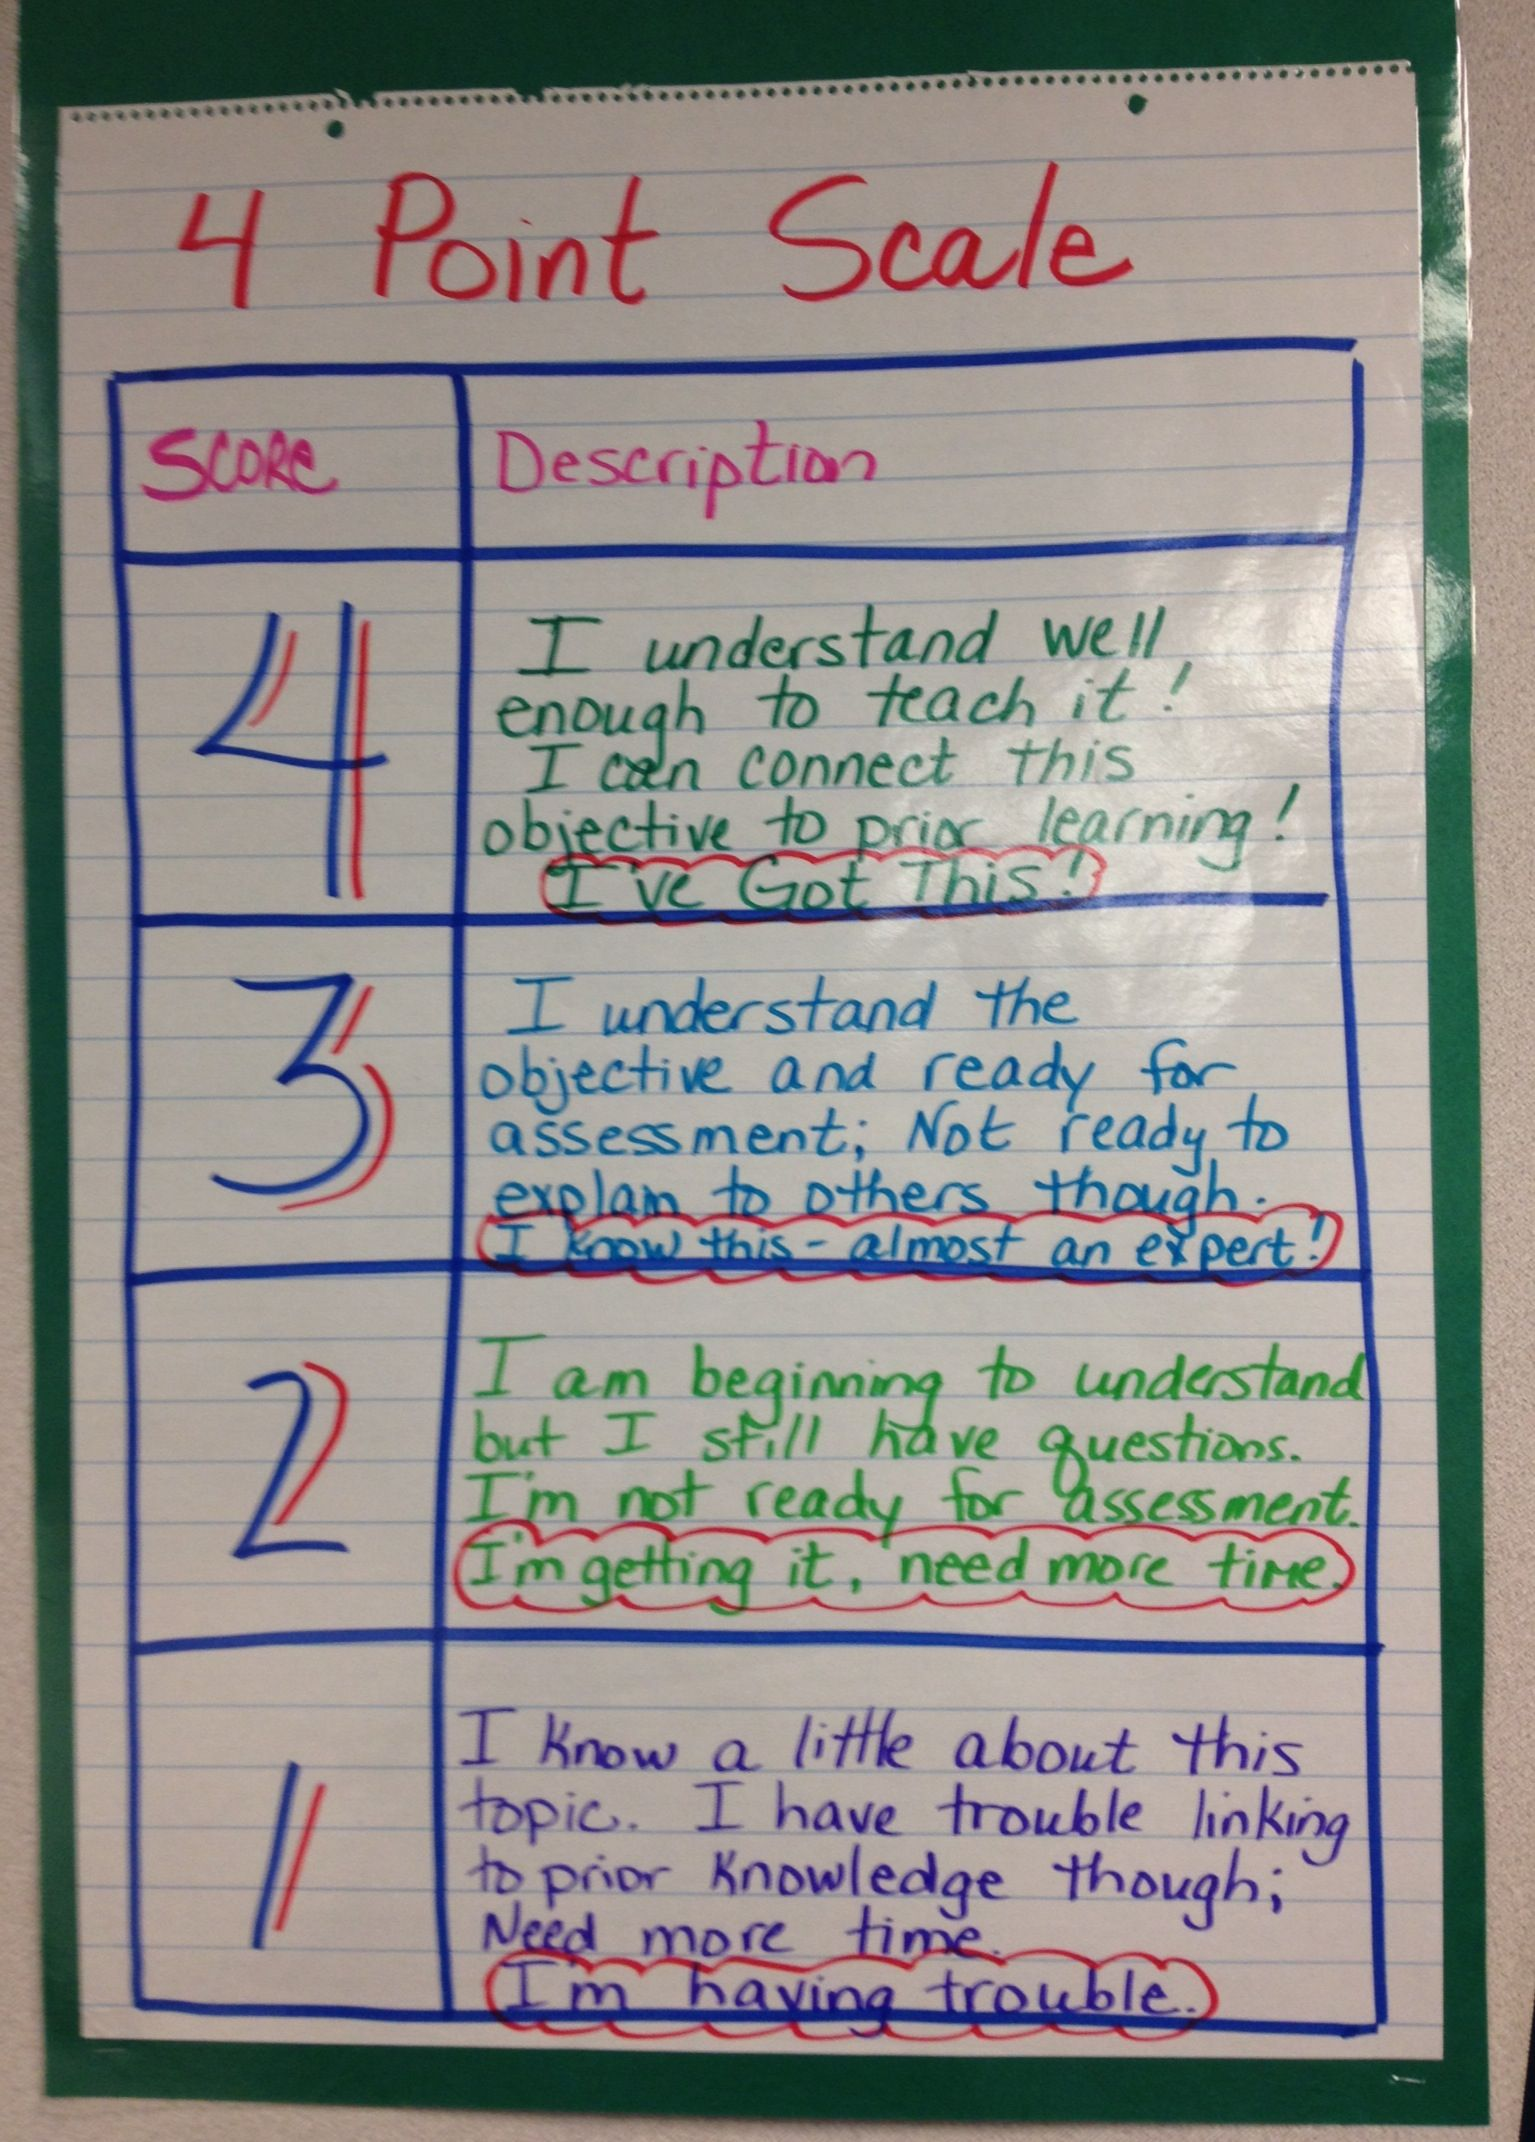 marzano 4 point scale middle school